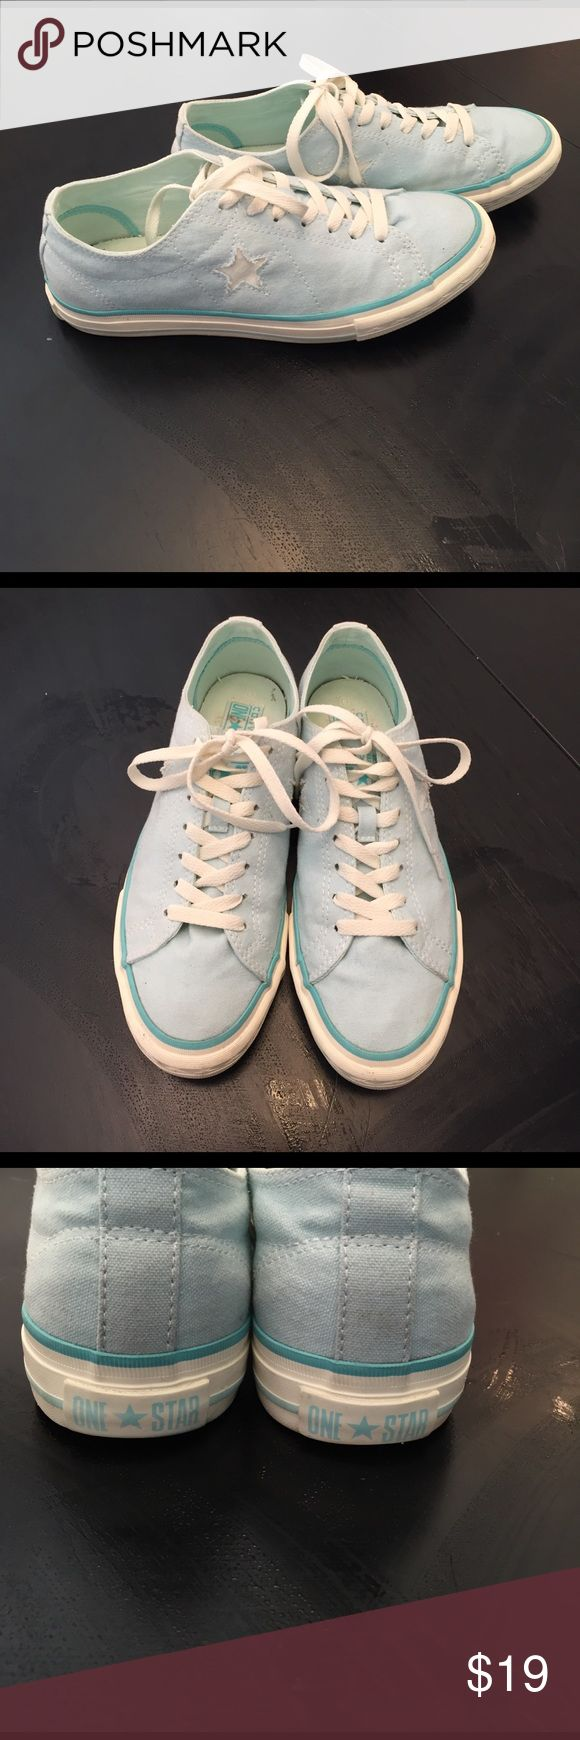 """Converse One Star Sneakers Amazing cool mint converse!  Reminds me of a great childhood, eating ice cream and chasing the boys in their bikes!!  Very pastel teal color. Of course the One Star Converse are the """"got to have"""" sneakers. Worn to one event and retired to my closet. Just in time for Summer! Converse Shoes Sneakers"""